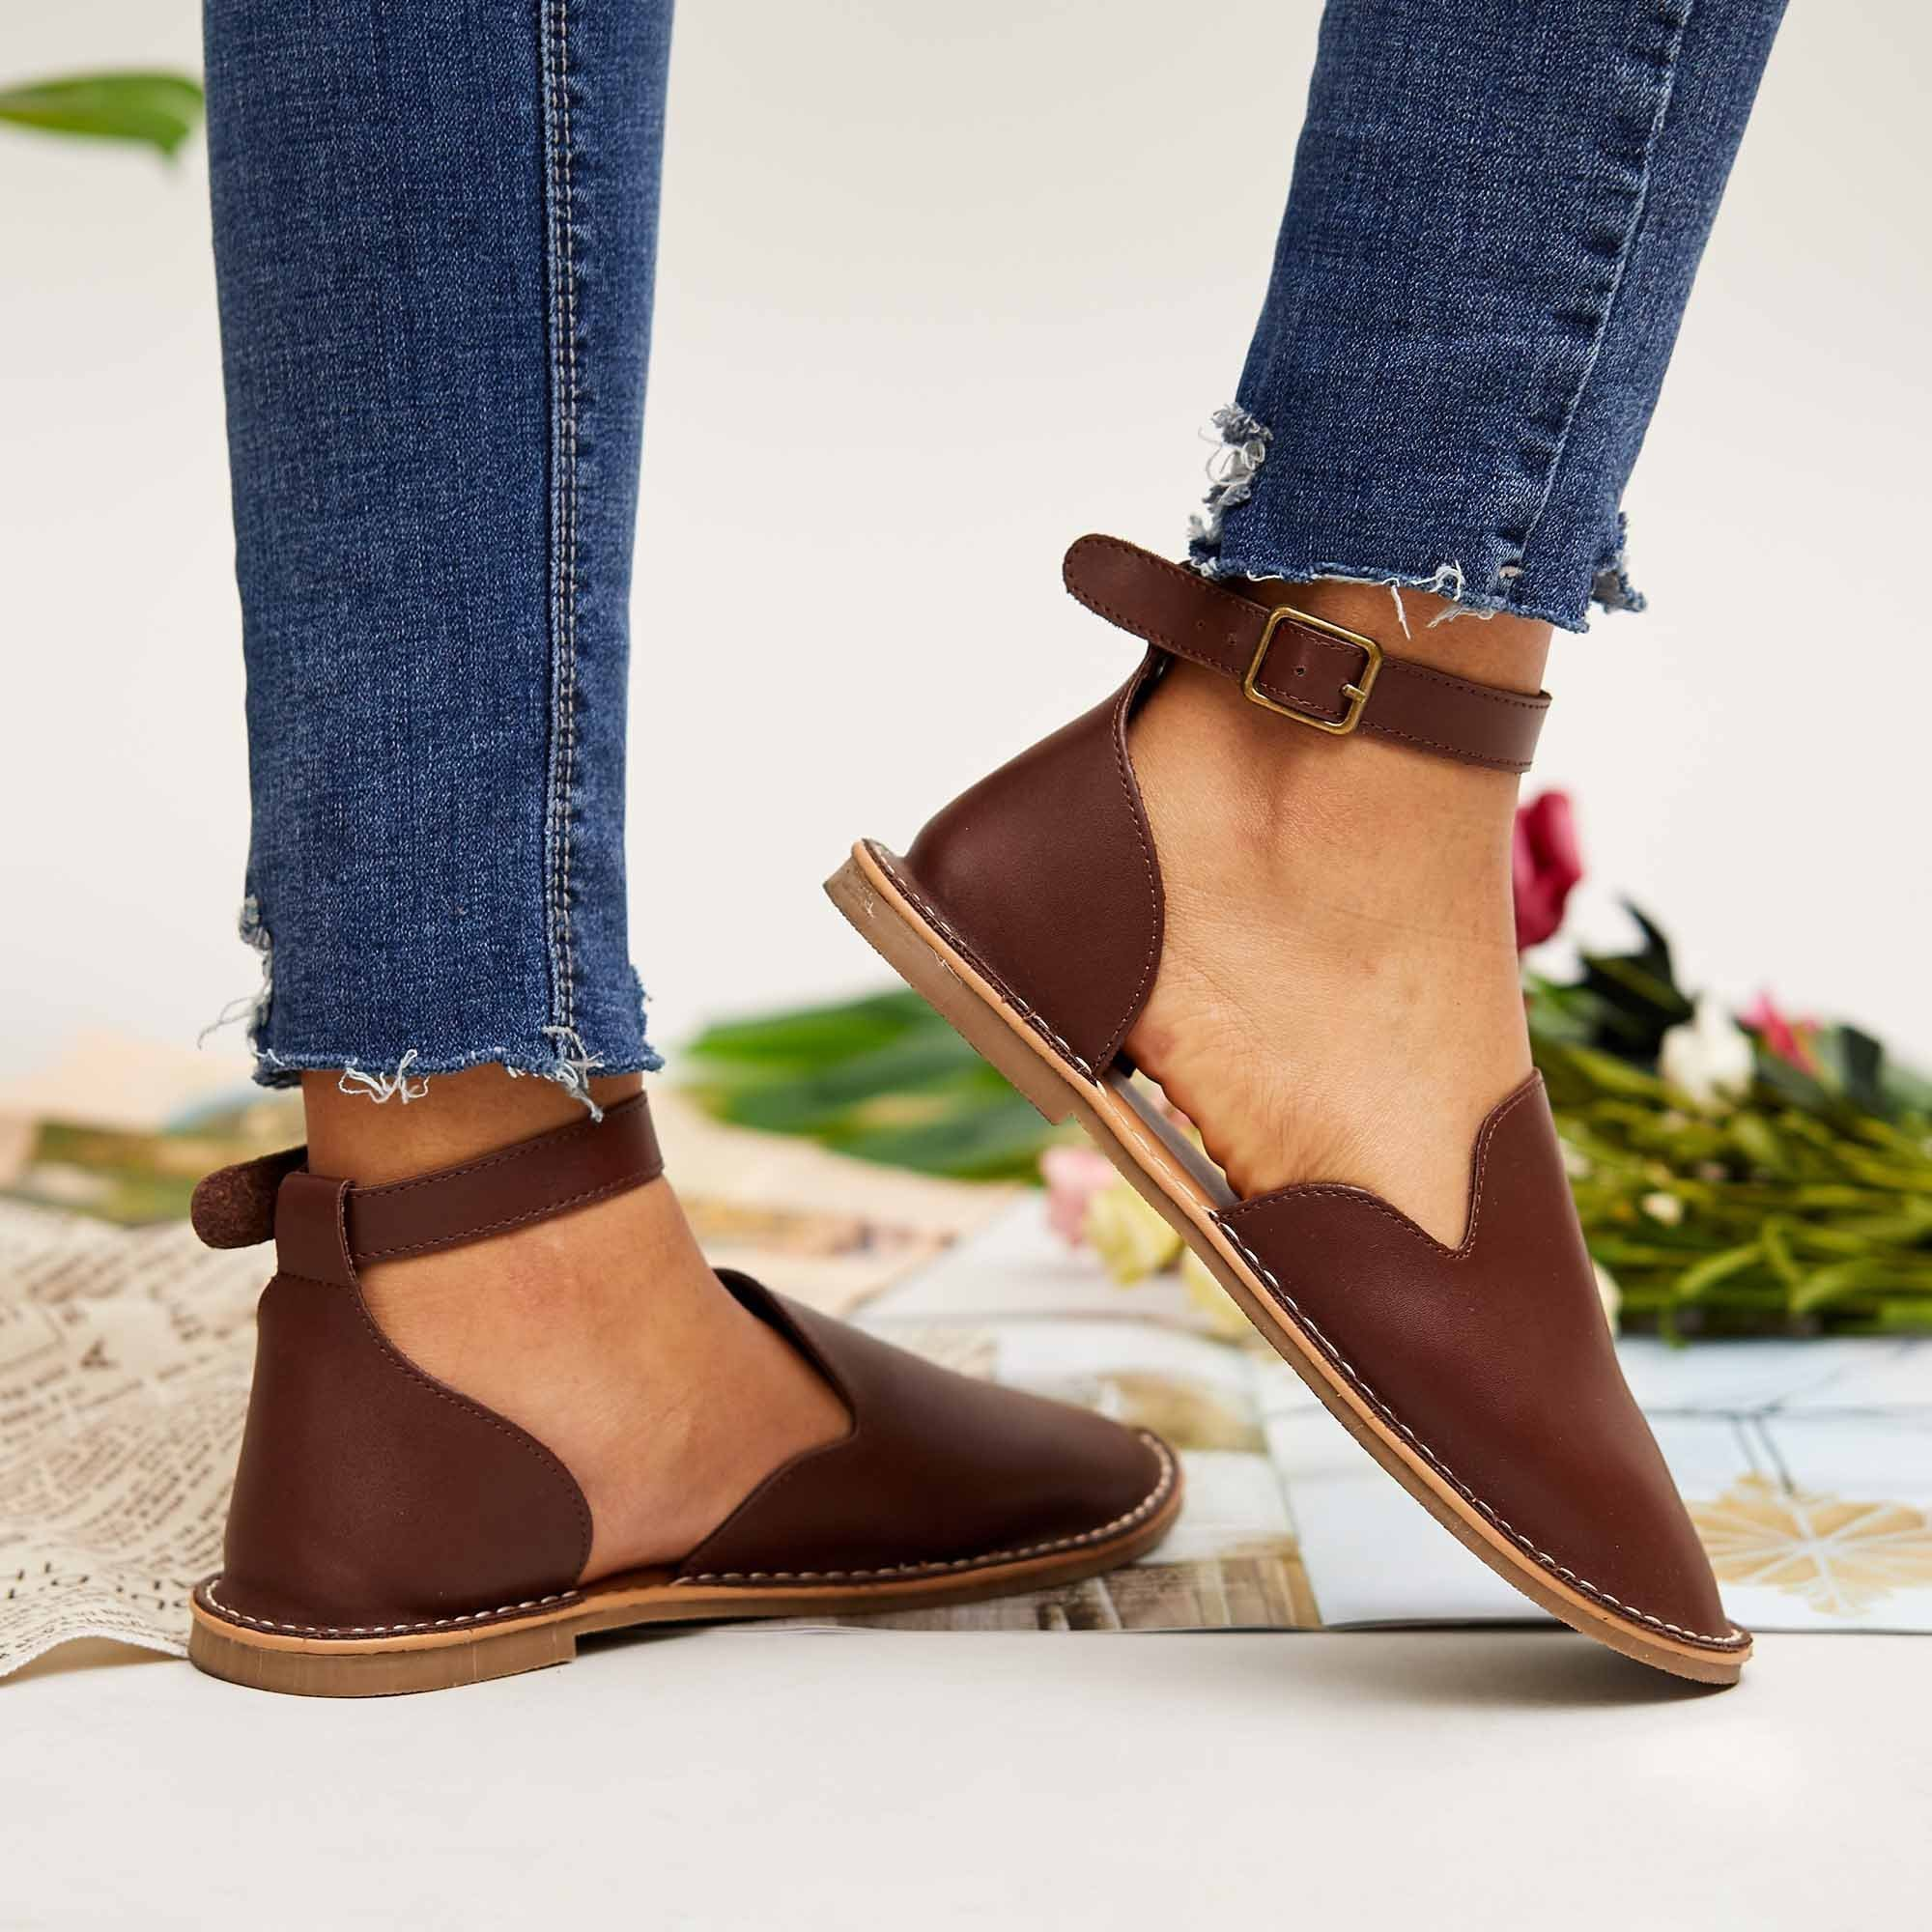 Faddishshoes Women Casual Slip On Ankle Buckle Flats